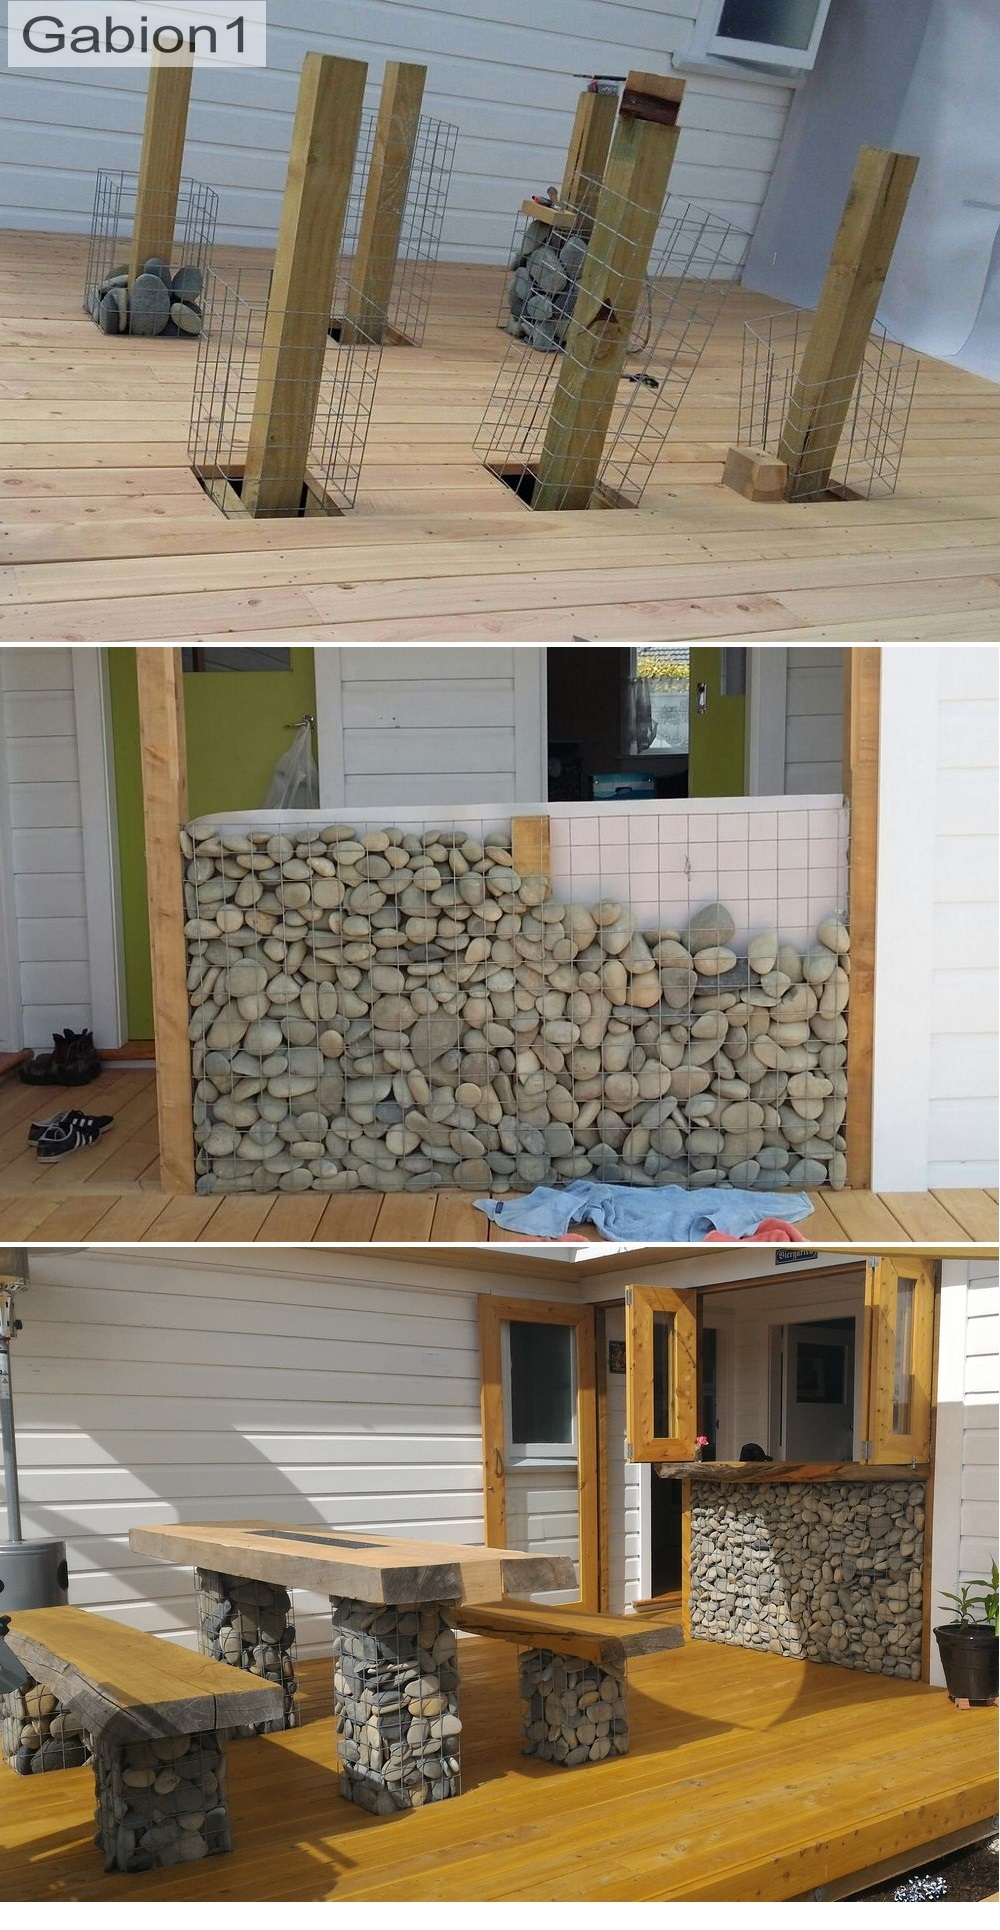 gabion bar seating